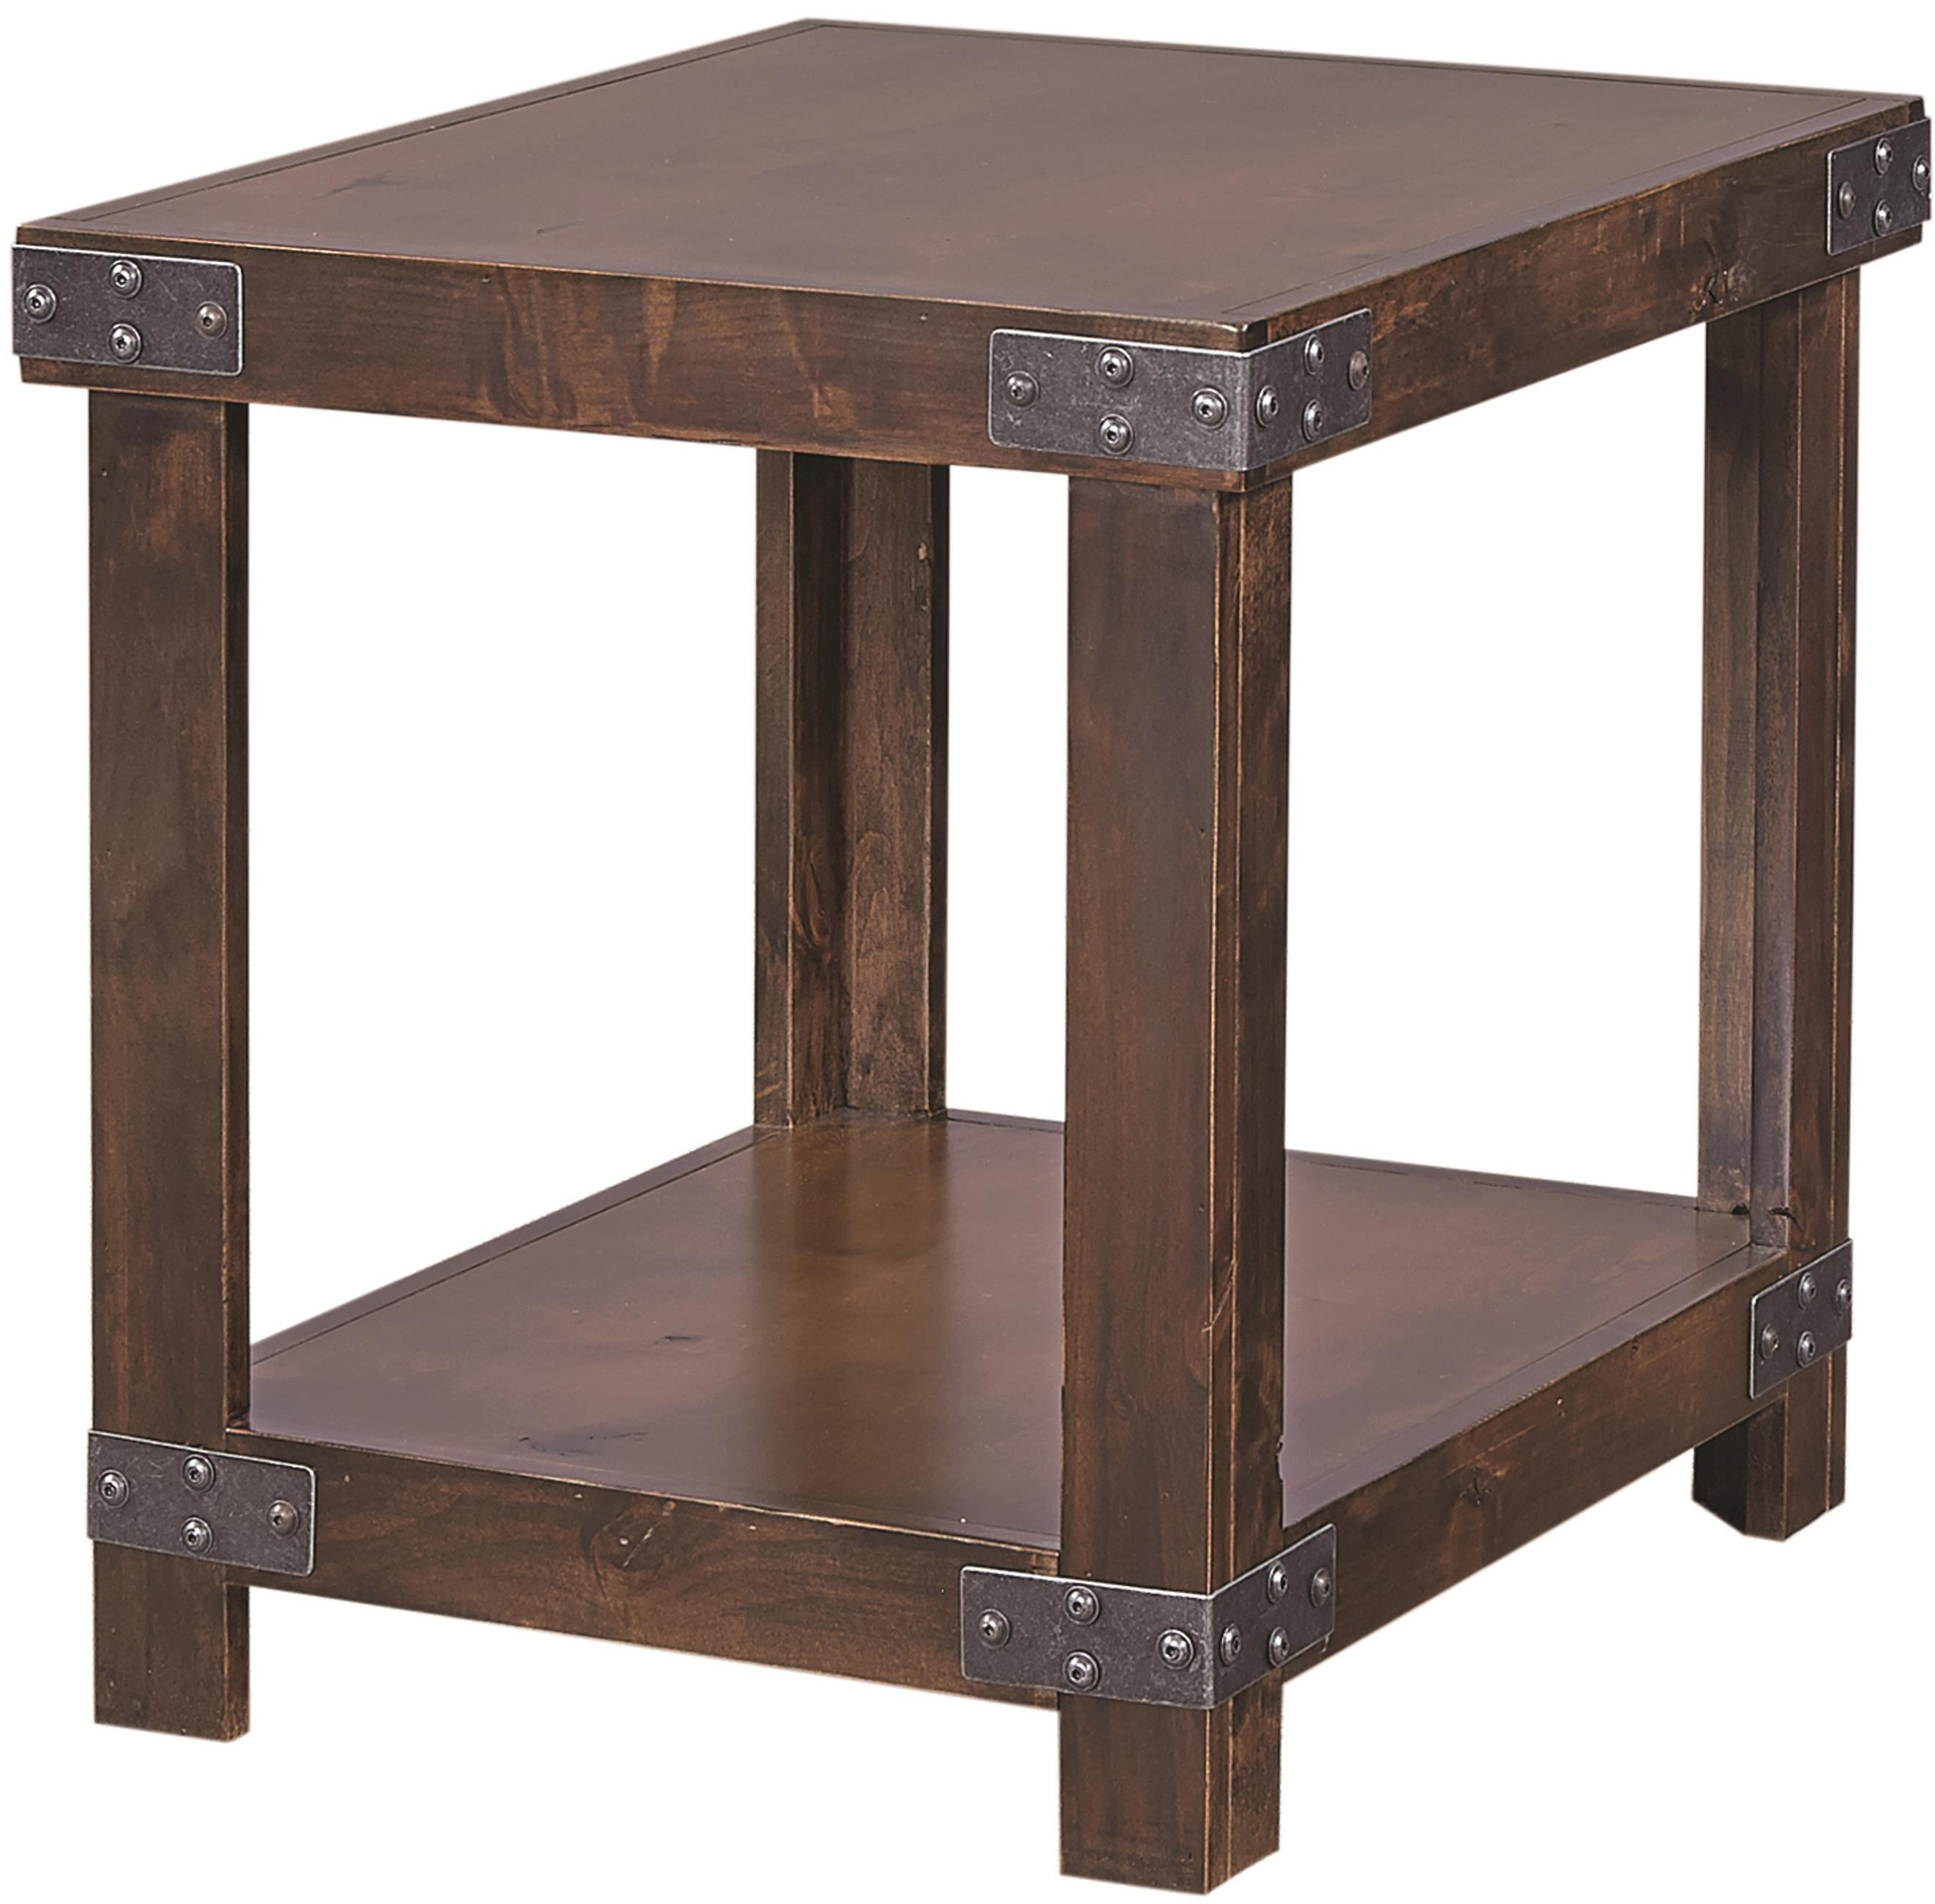 Aspen Home Coffee Table.End Table With Shelf By Aspenhome Wolf Furniture